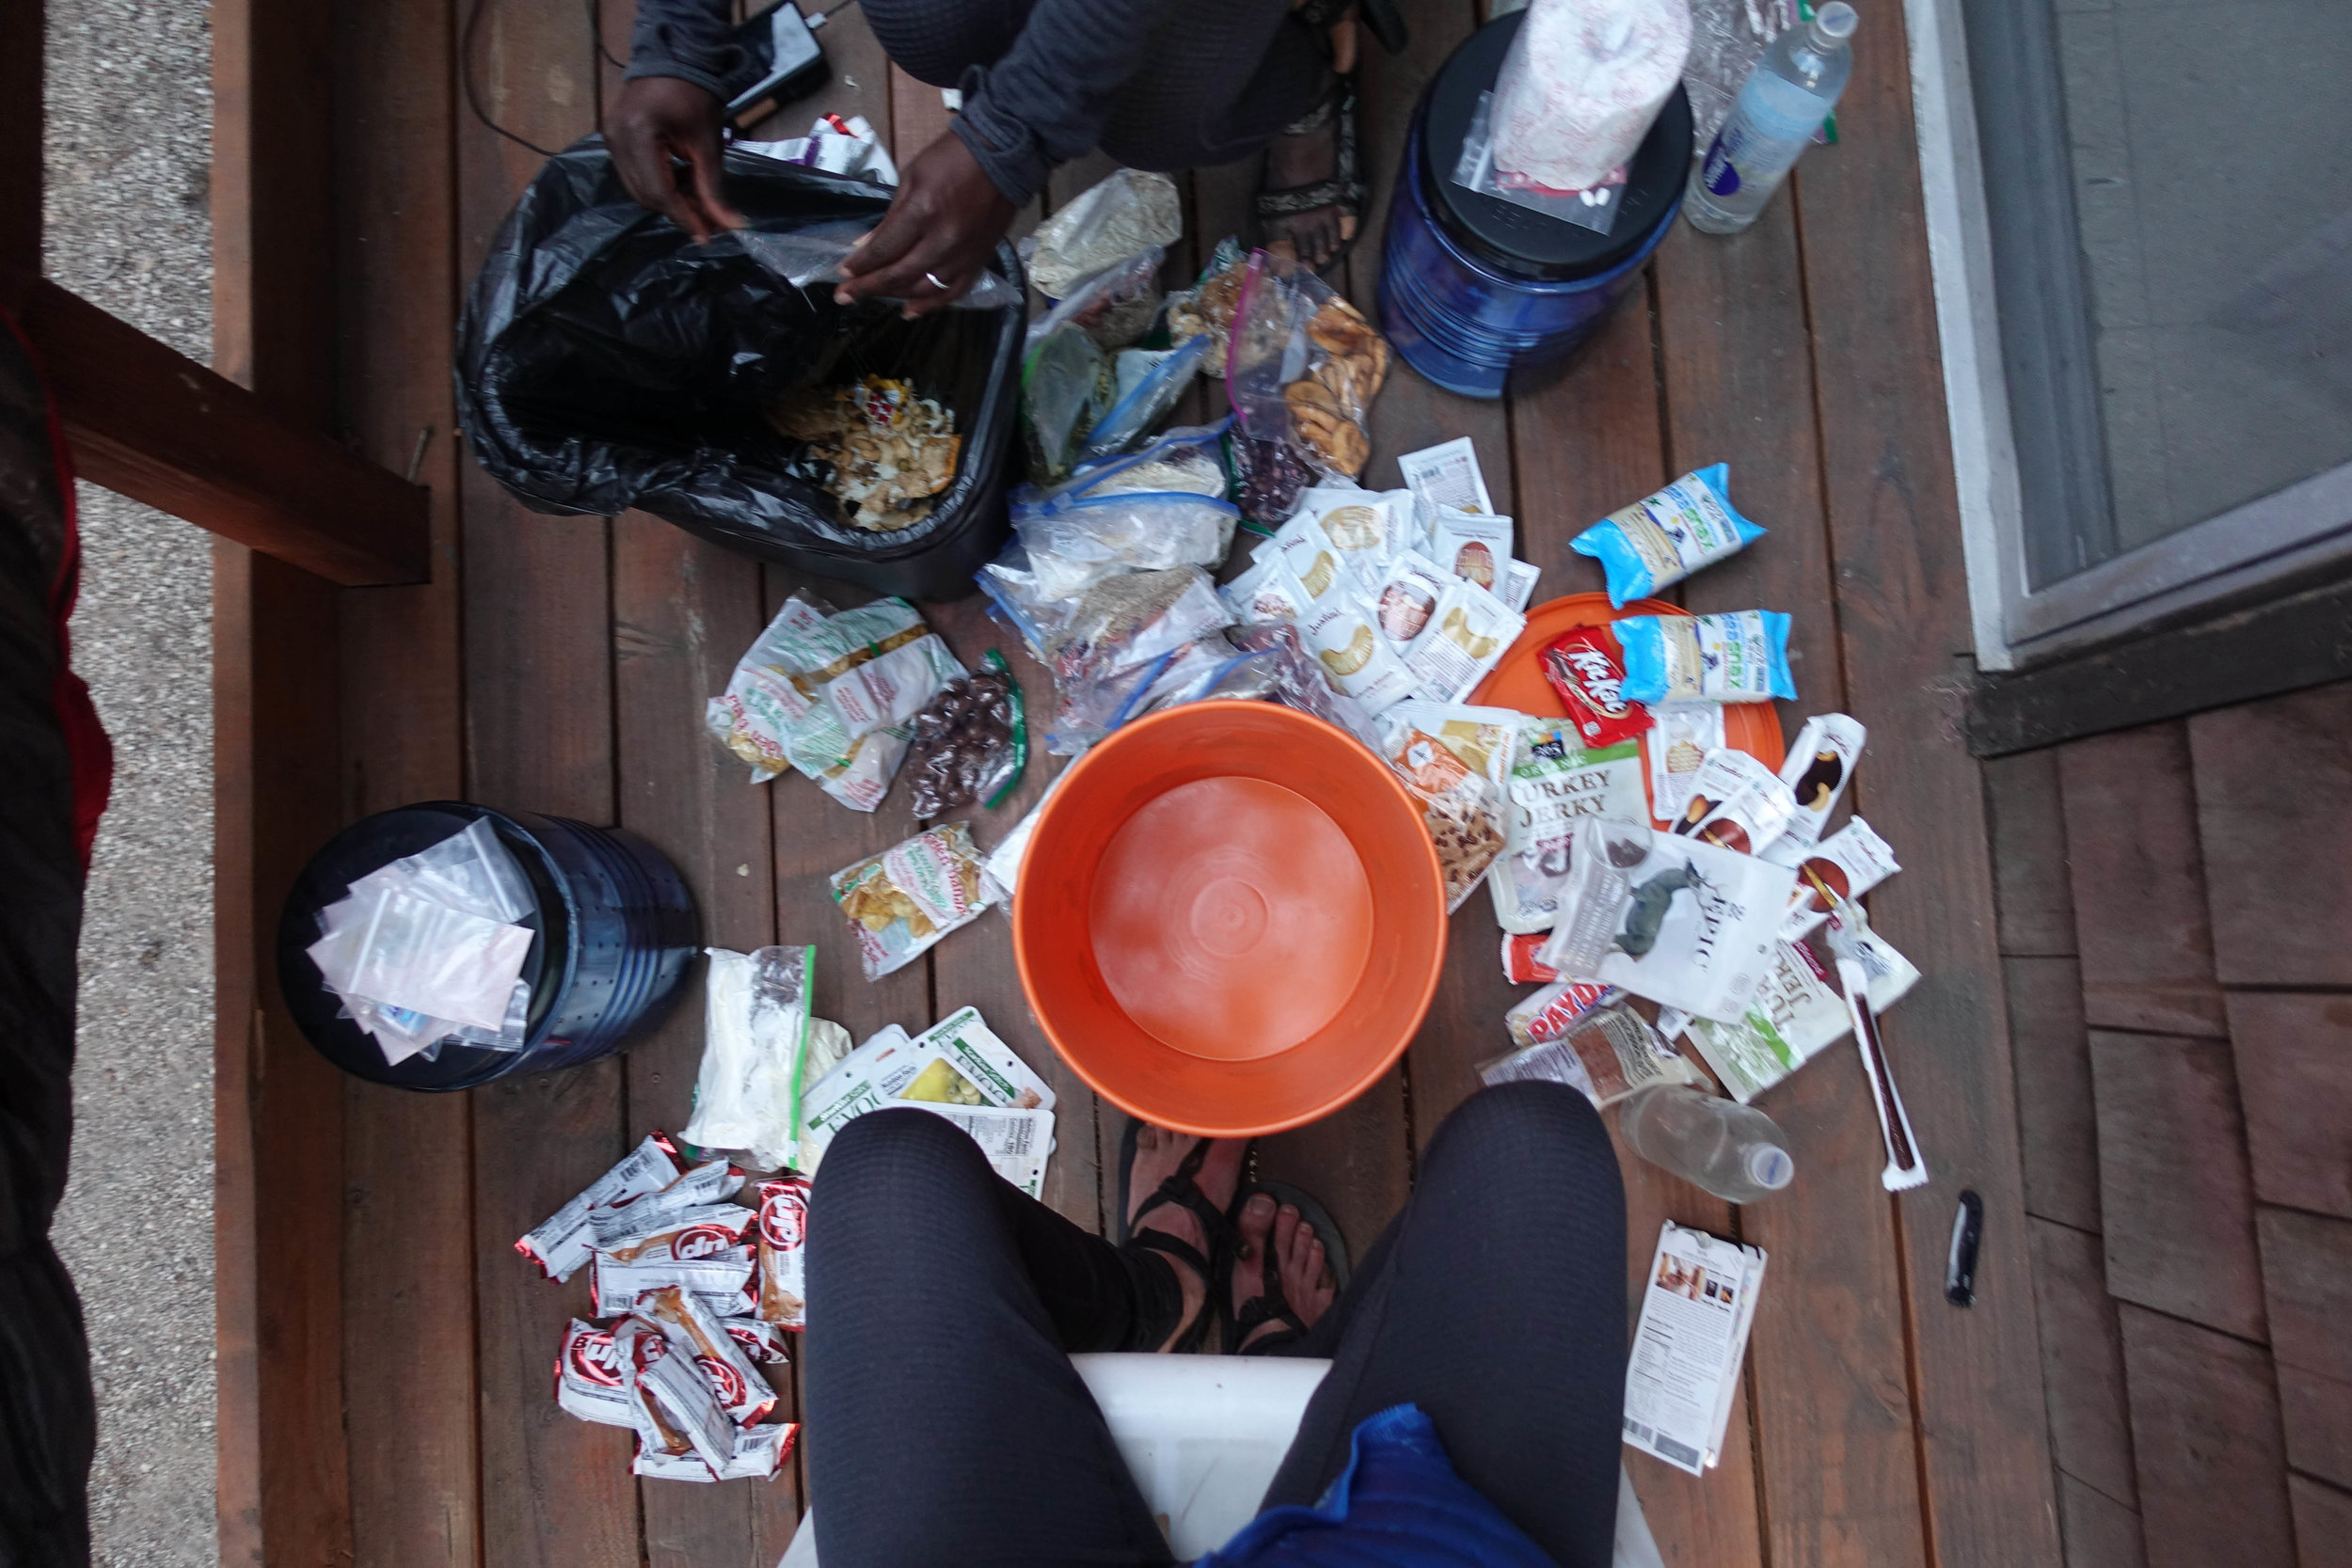 This was our 2nd resupply. We stuffed all our food into that bright orange bucket and mailed it to Red's Meadow to pick-up when we arrived.